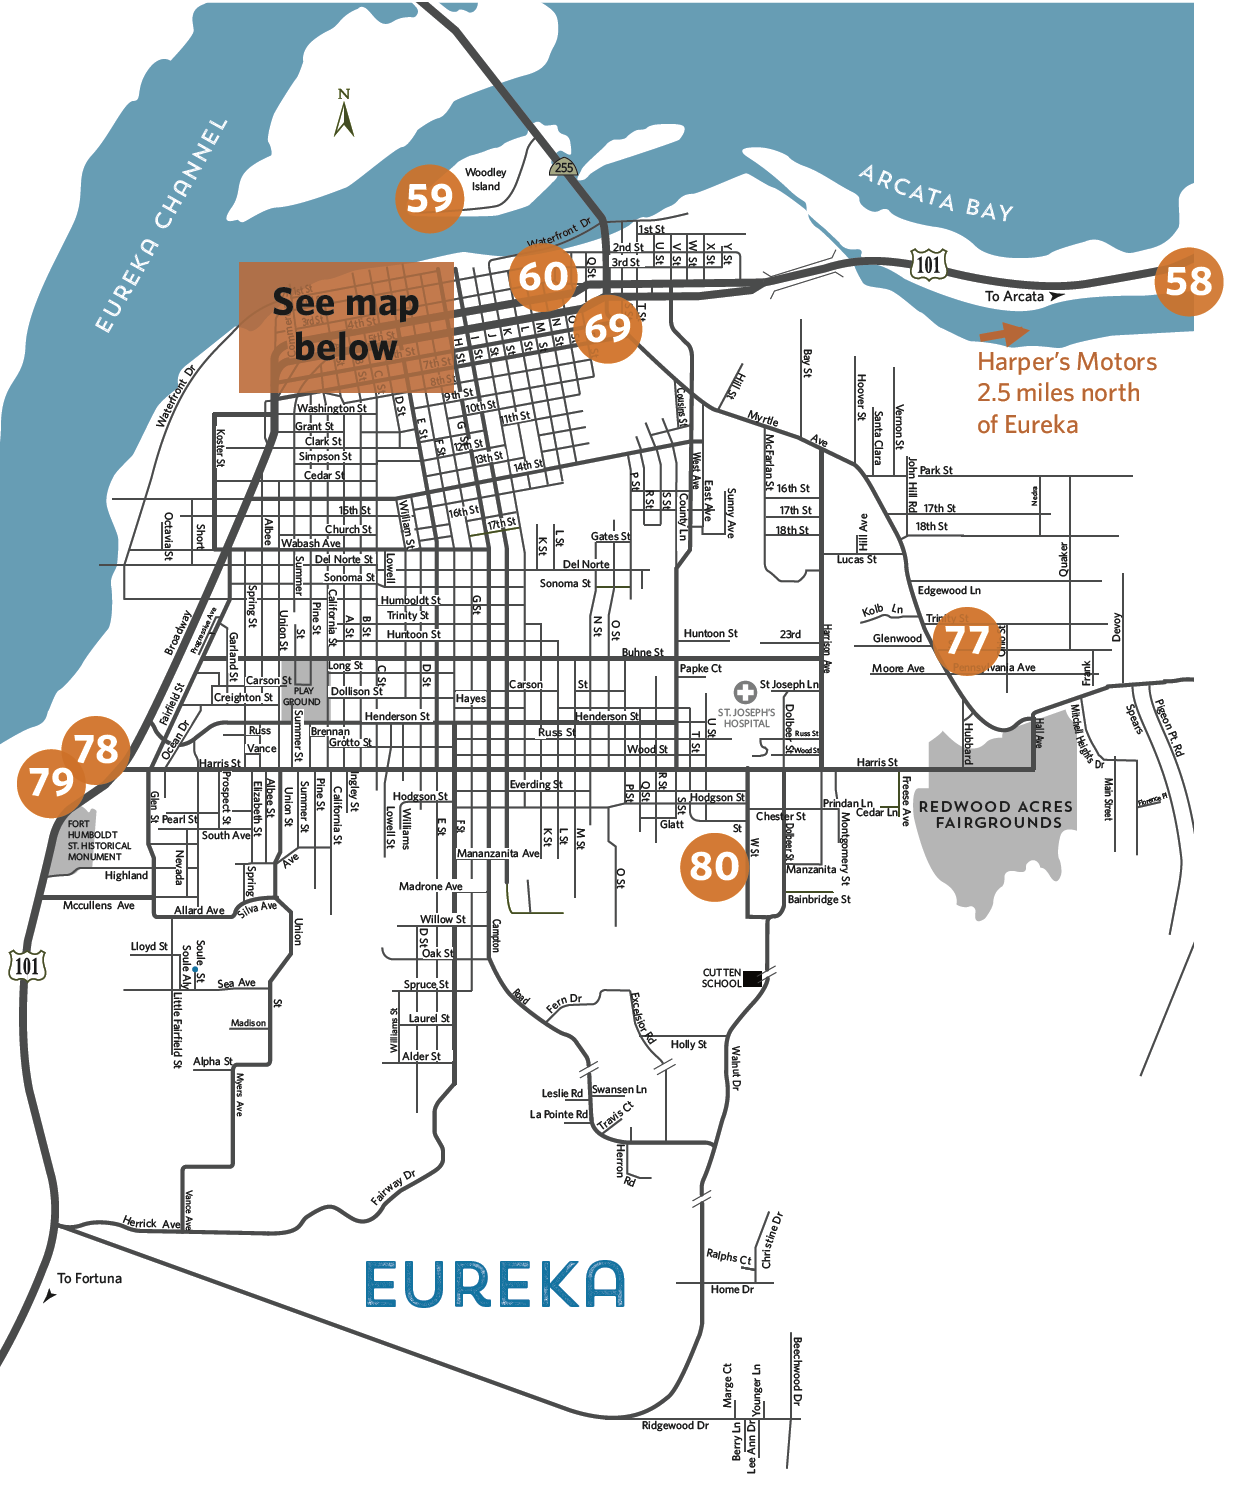 Overview map of locations - Eureka Overview